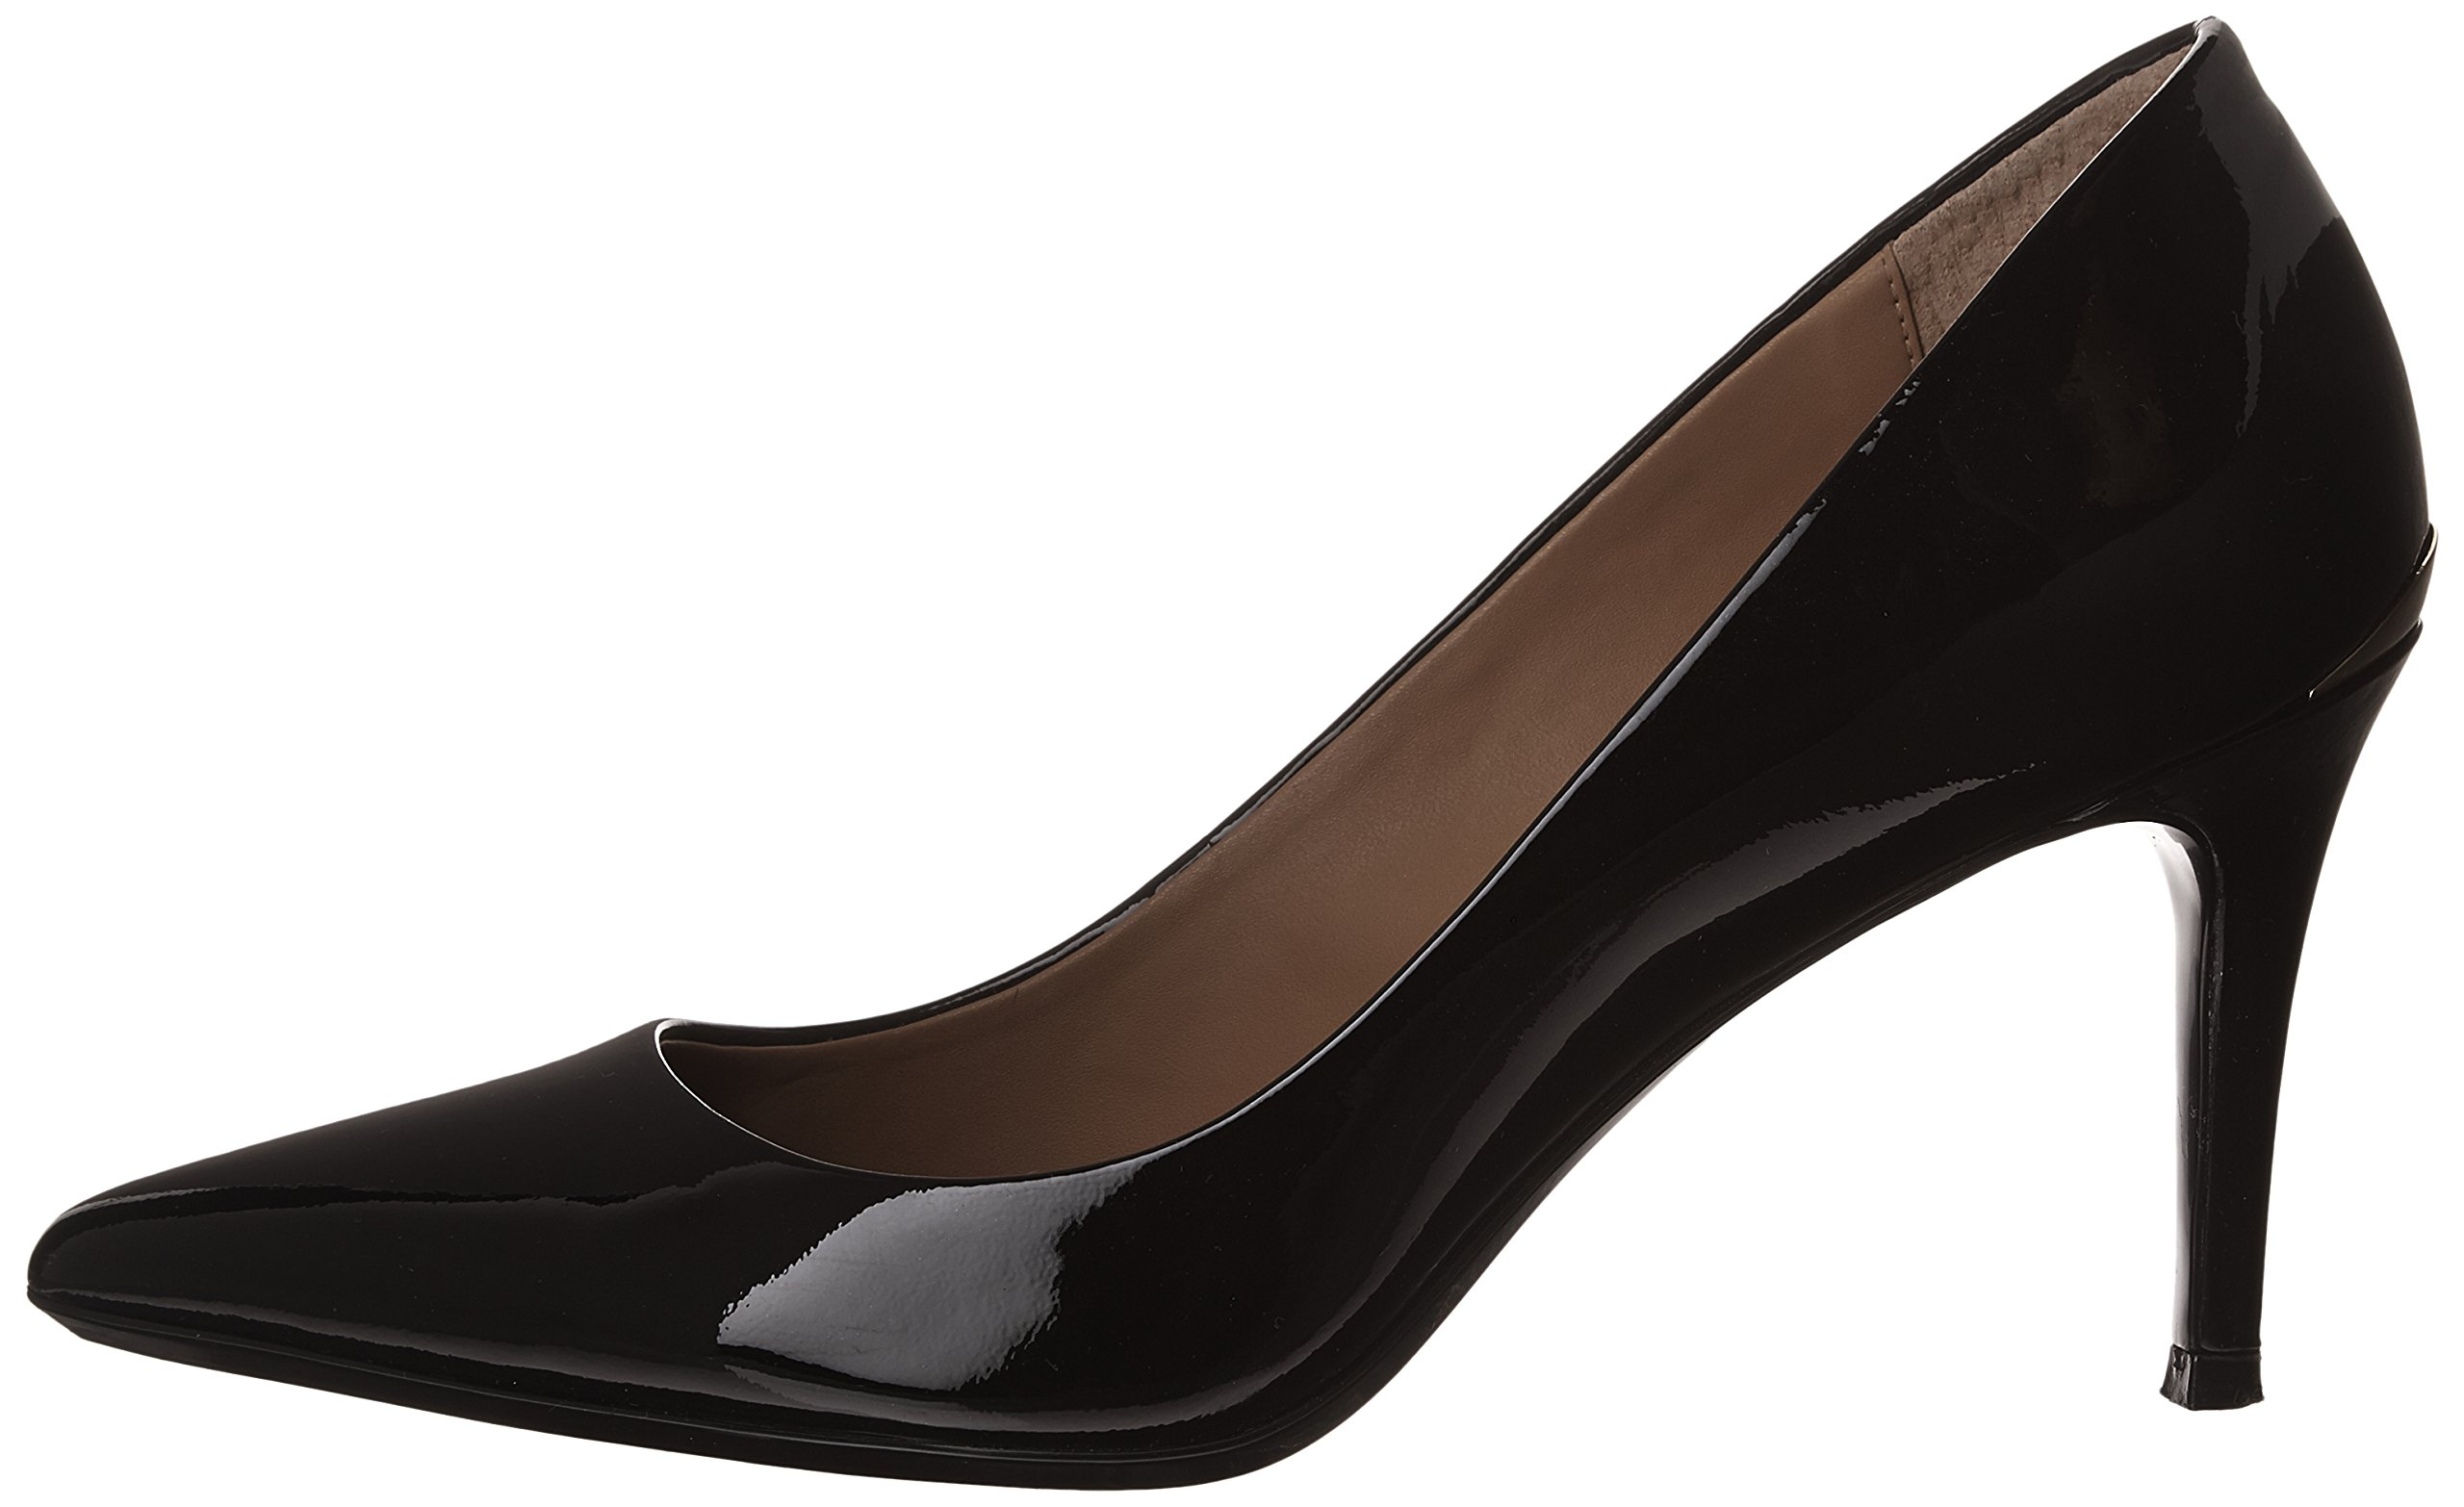 Calvin Klein Women's Gayle  Dress Pump,Black Patent, 7.5 M by Calvin Klein (Image #5)